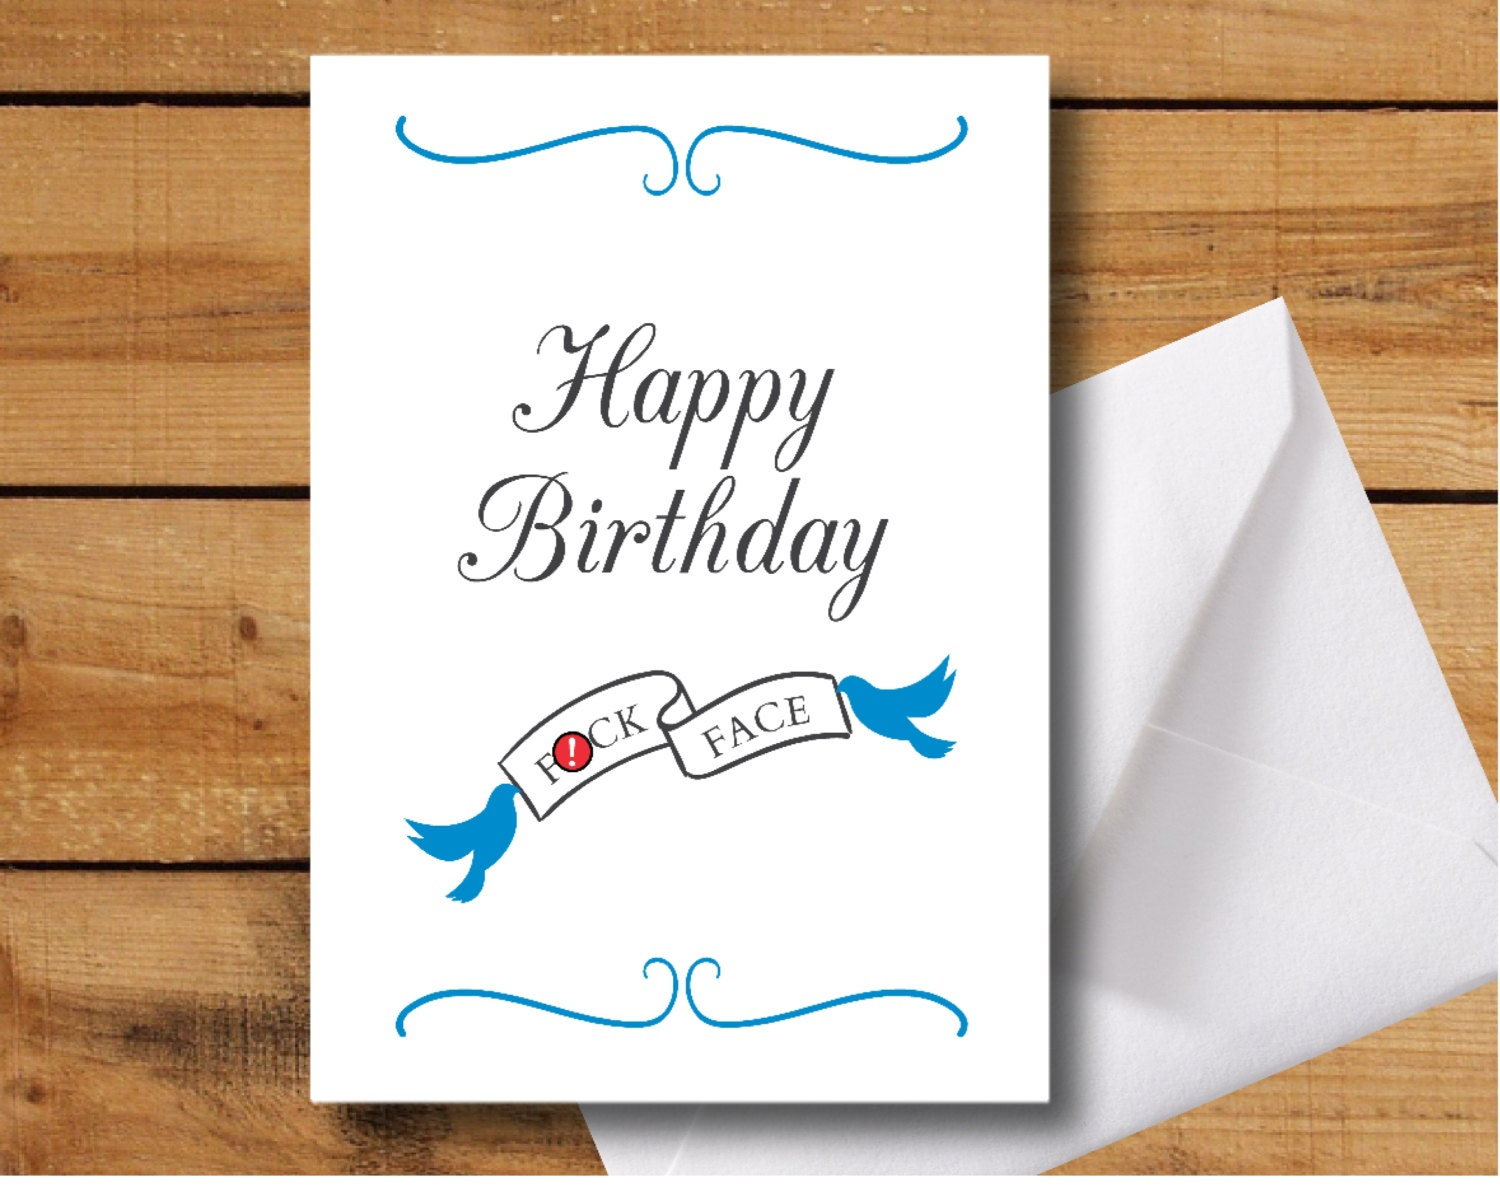 Happy Birthday Fck Face Greeting Card Offensive Birthday